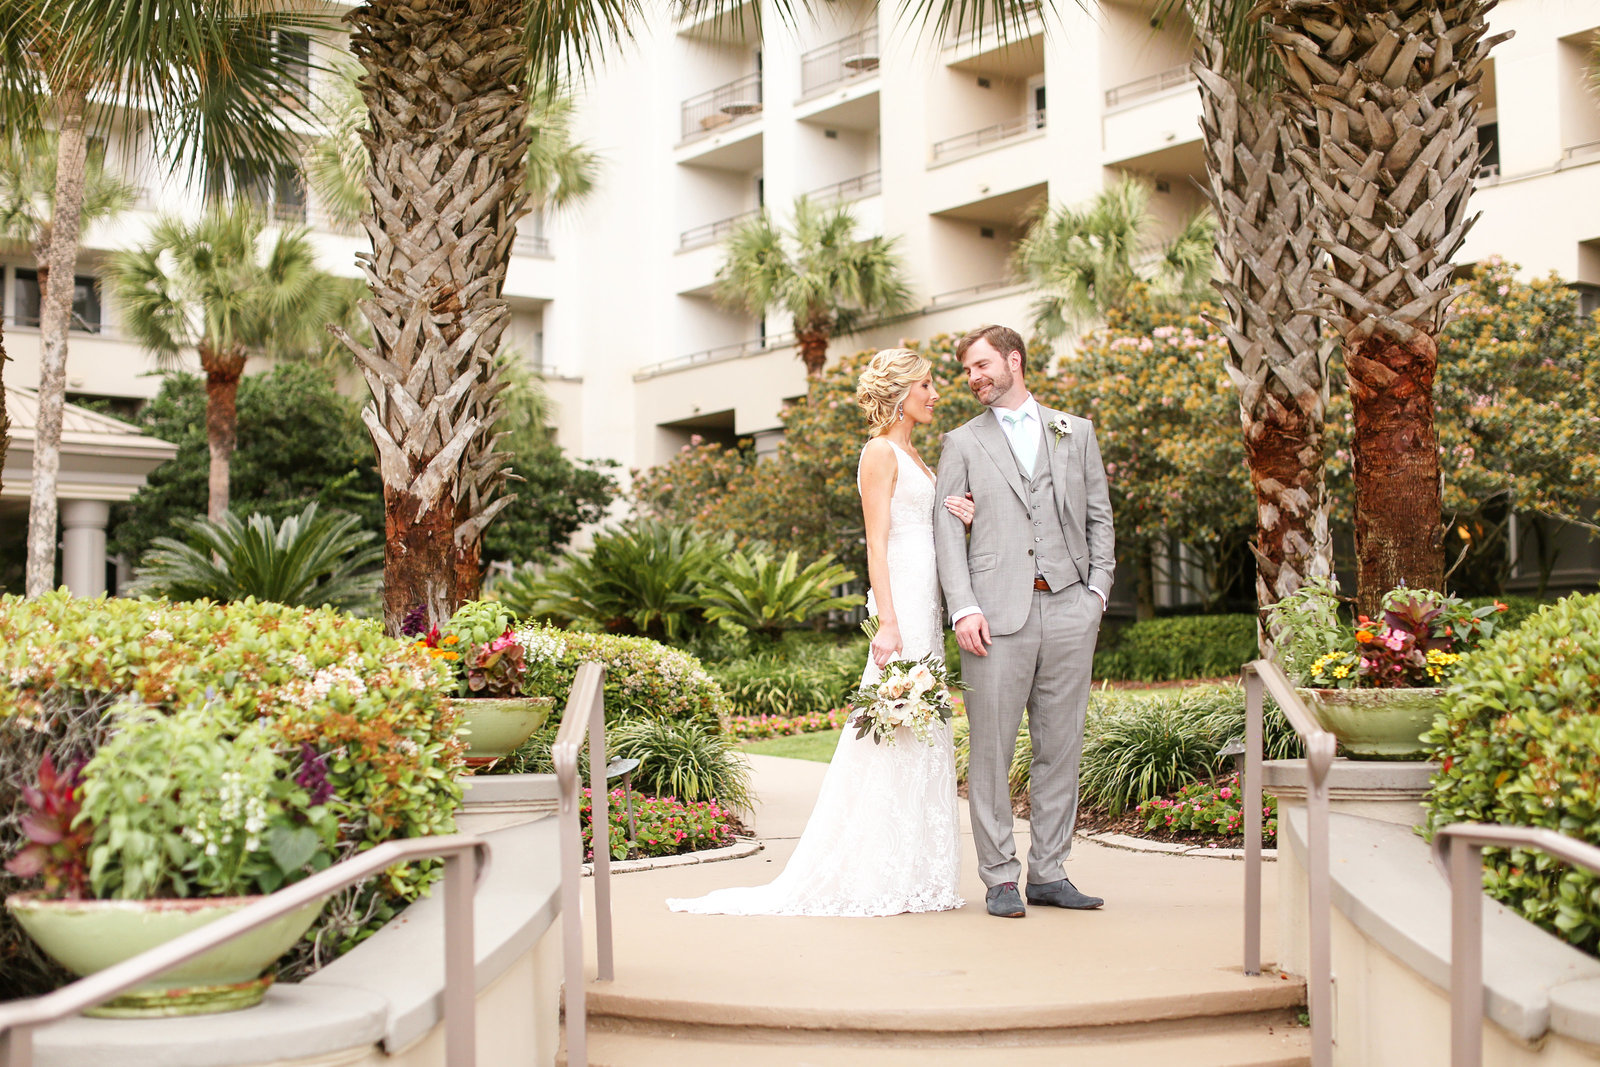 31Amelia_Island_Ritz_Carlton_Wedding_Kearney222 copy